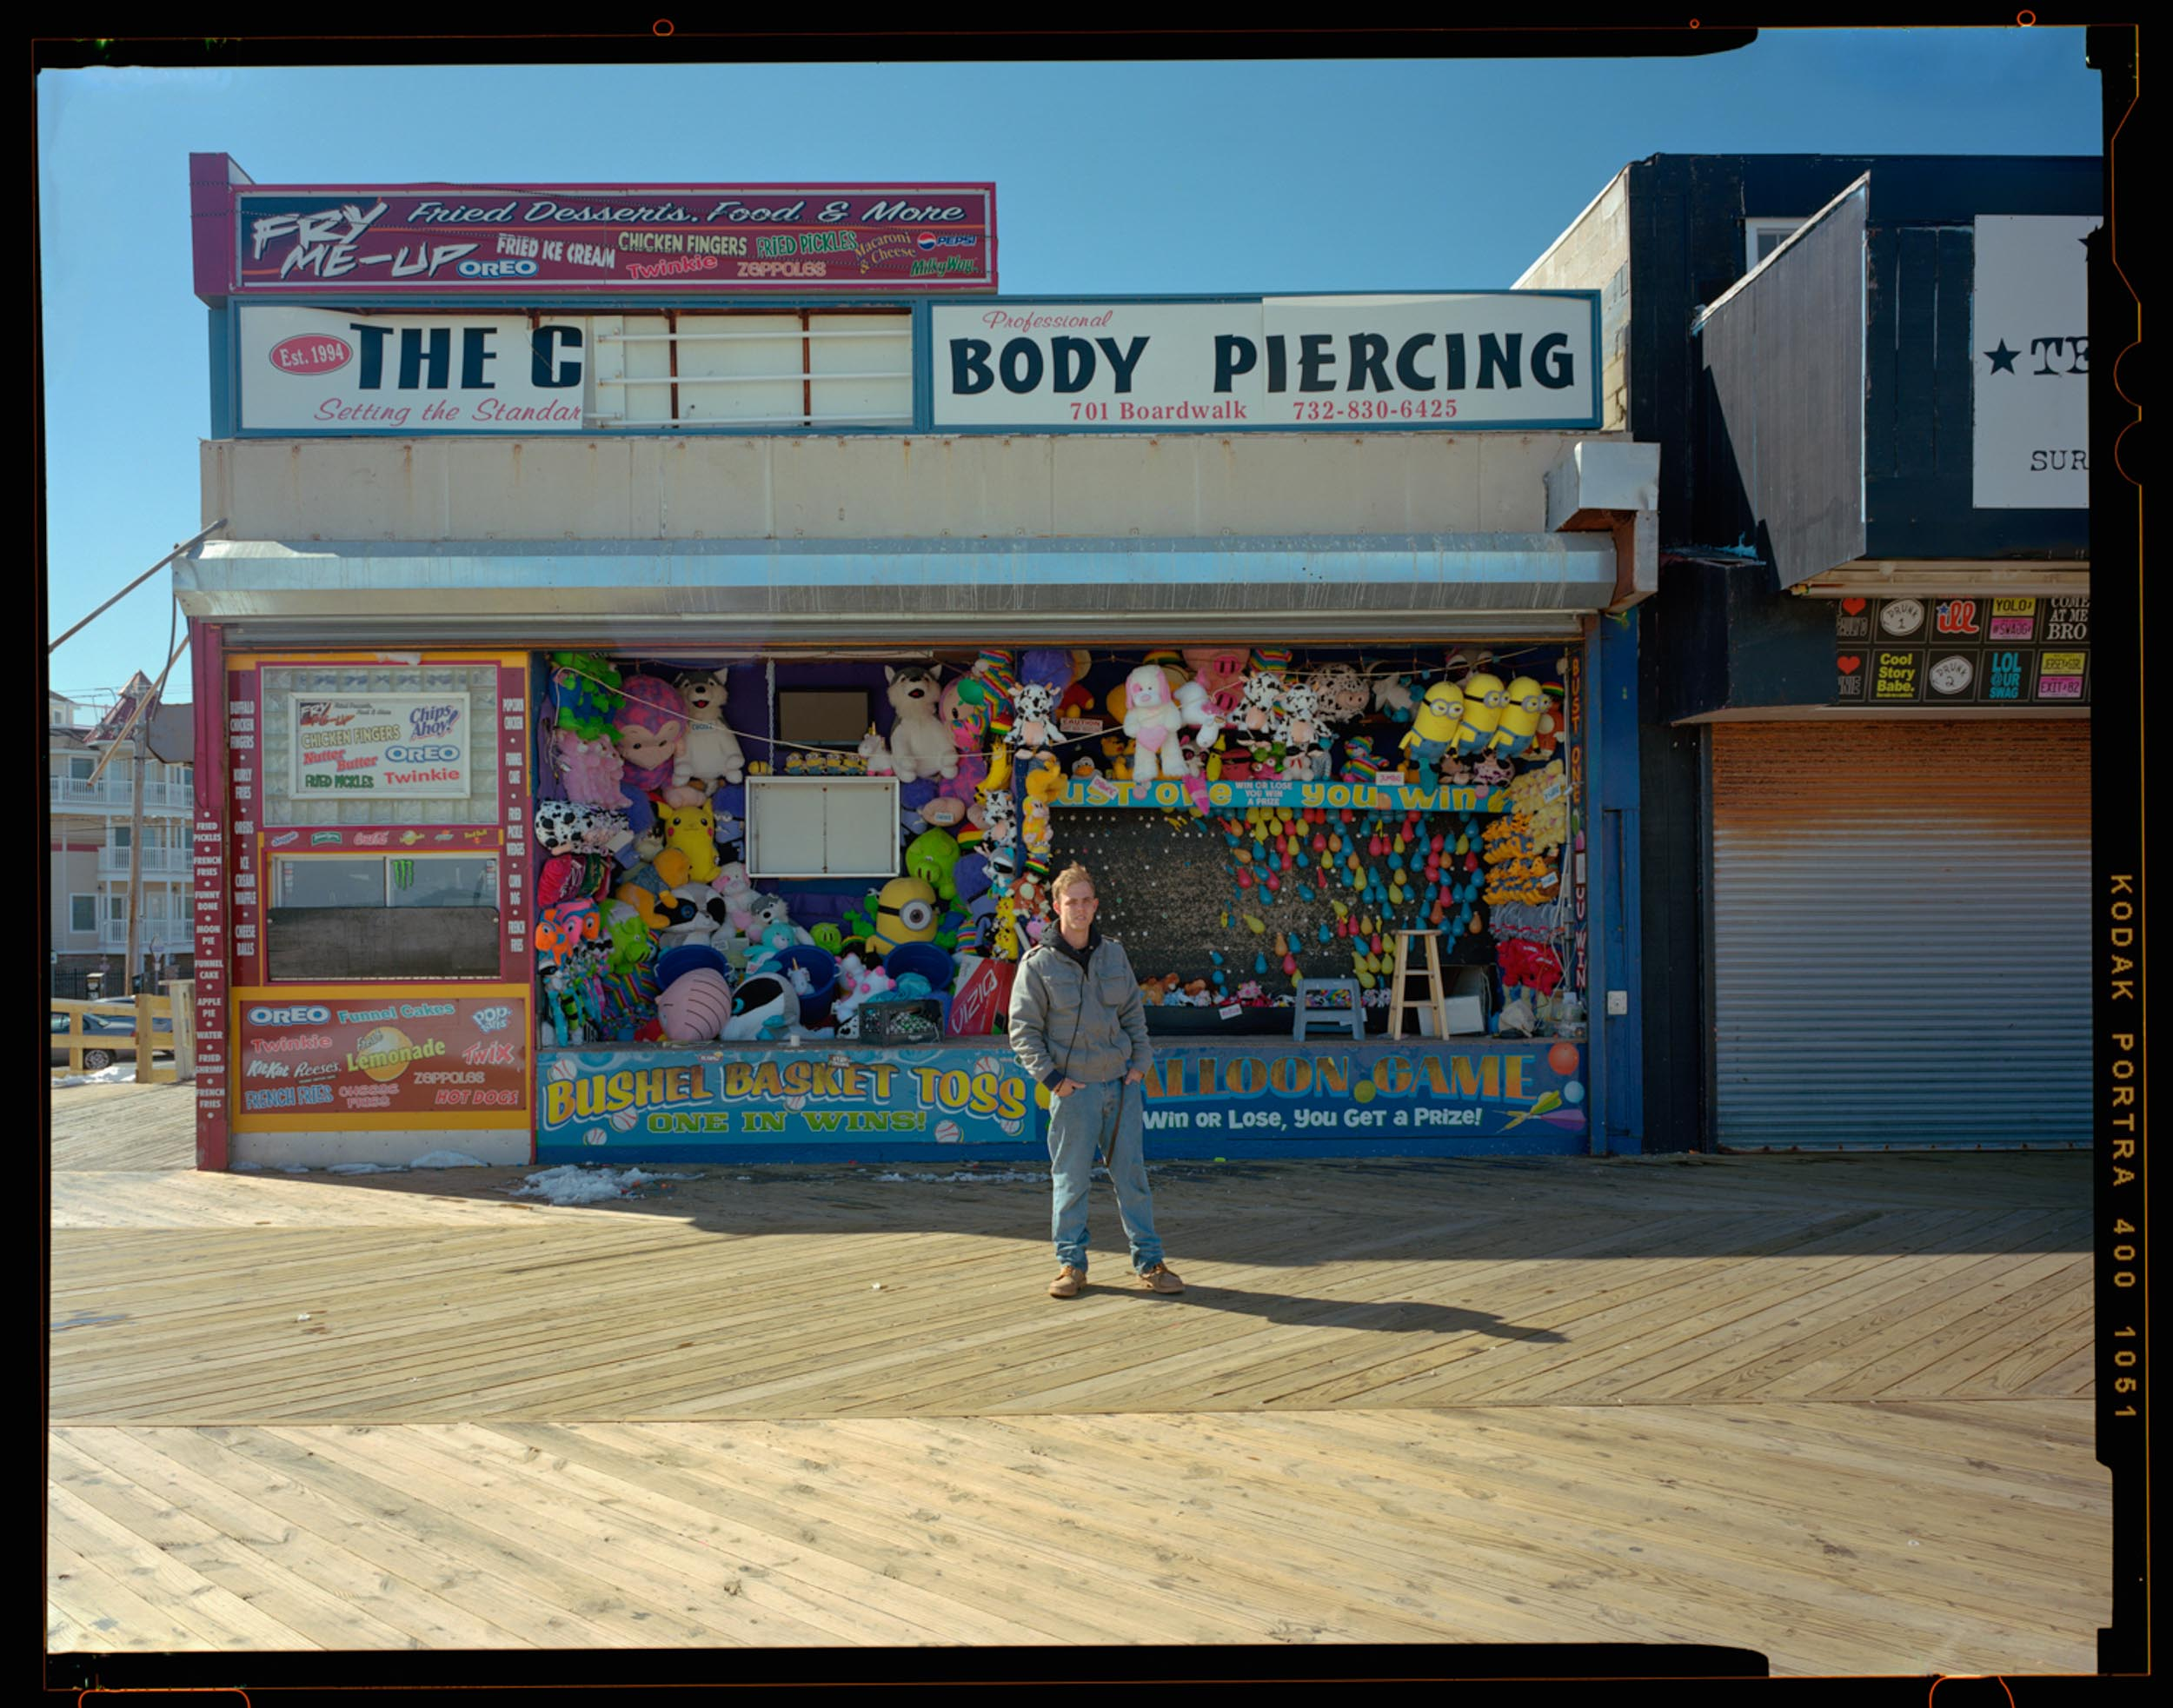 Body Piercing, Seaside, NJ. 2014. 4x5 Shen Hao    It was a bright sunny cold day as I was walking down the boardwalk with my 4x5 camera on my shoulder. I said hello and the man at the shop took interest in my camera. After talking and he told me he had interest in photography so I showed him how the camera worked. He eventually asked me what I was doing, so I explained and asked if he would mind standing for a portrait. He was hesitant at first so I pulled back and tried to capture the whole place along with him so he would feel more comfortable. I actually never caught his name. Nice Kid.